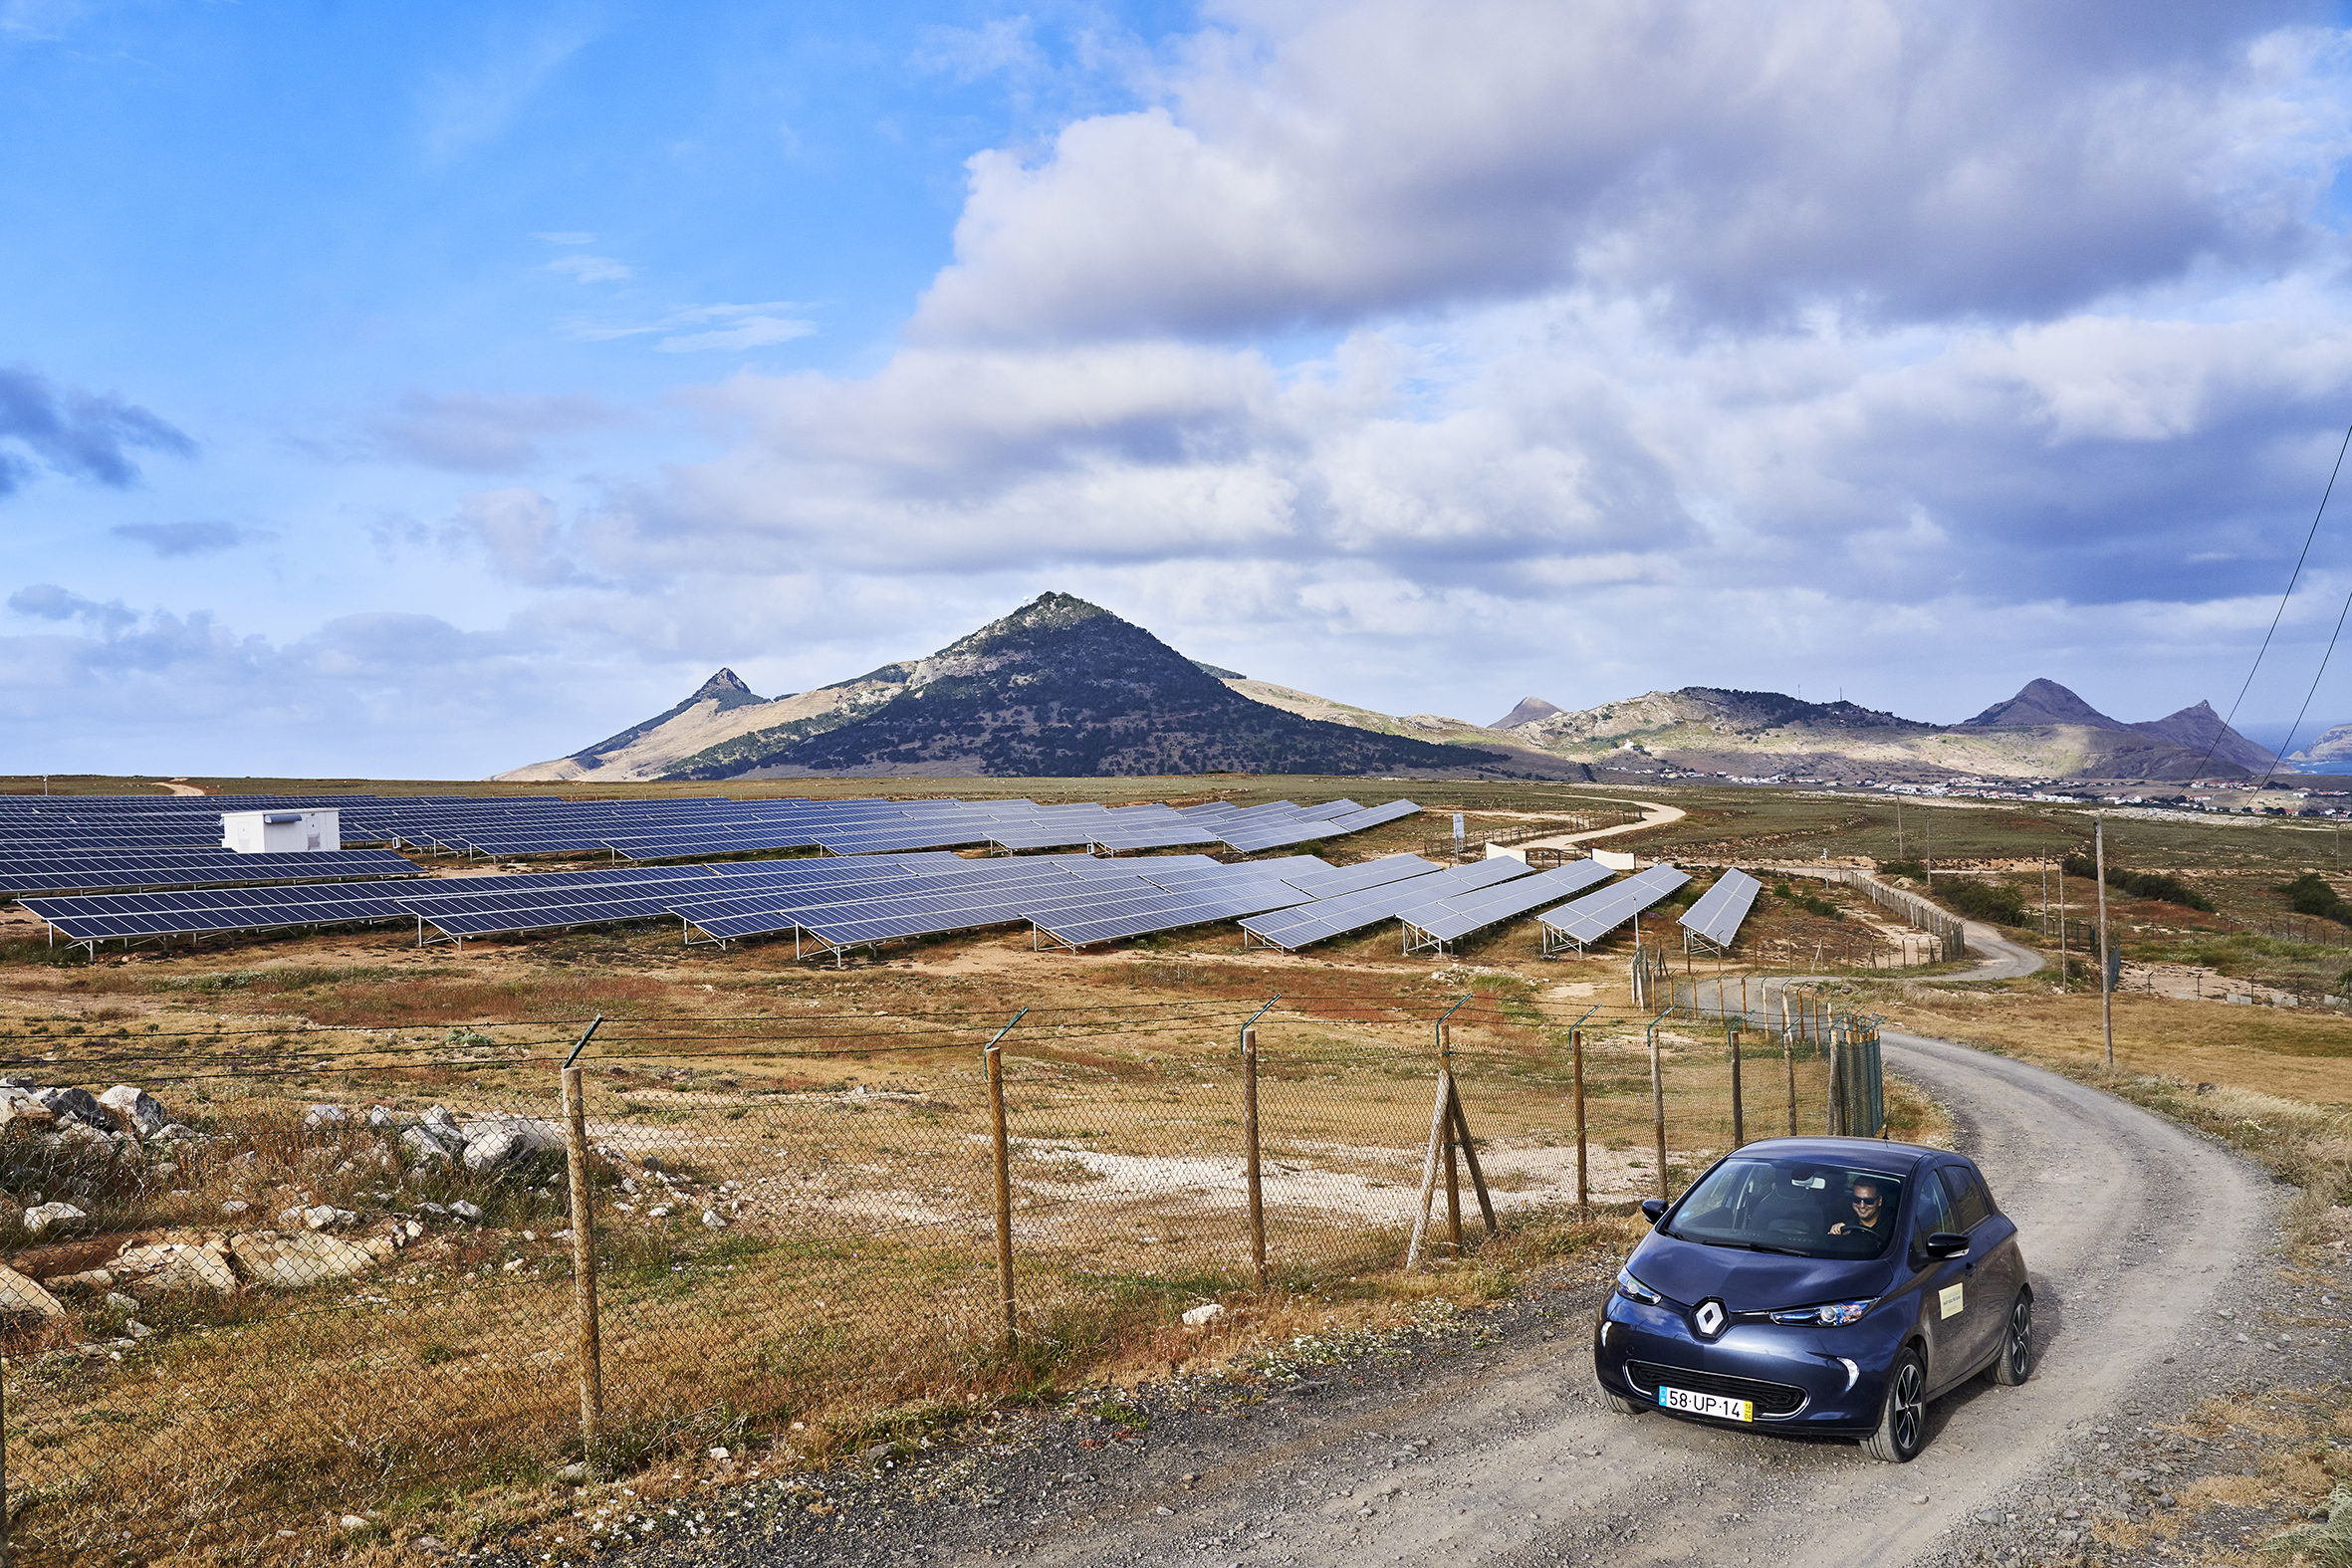 Porto Santo V2G project, The Mobility House and EVBox